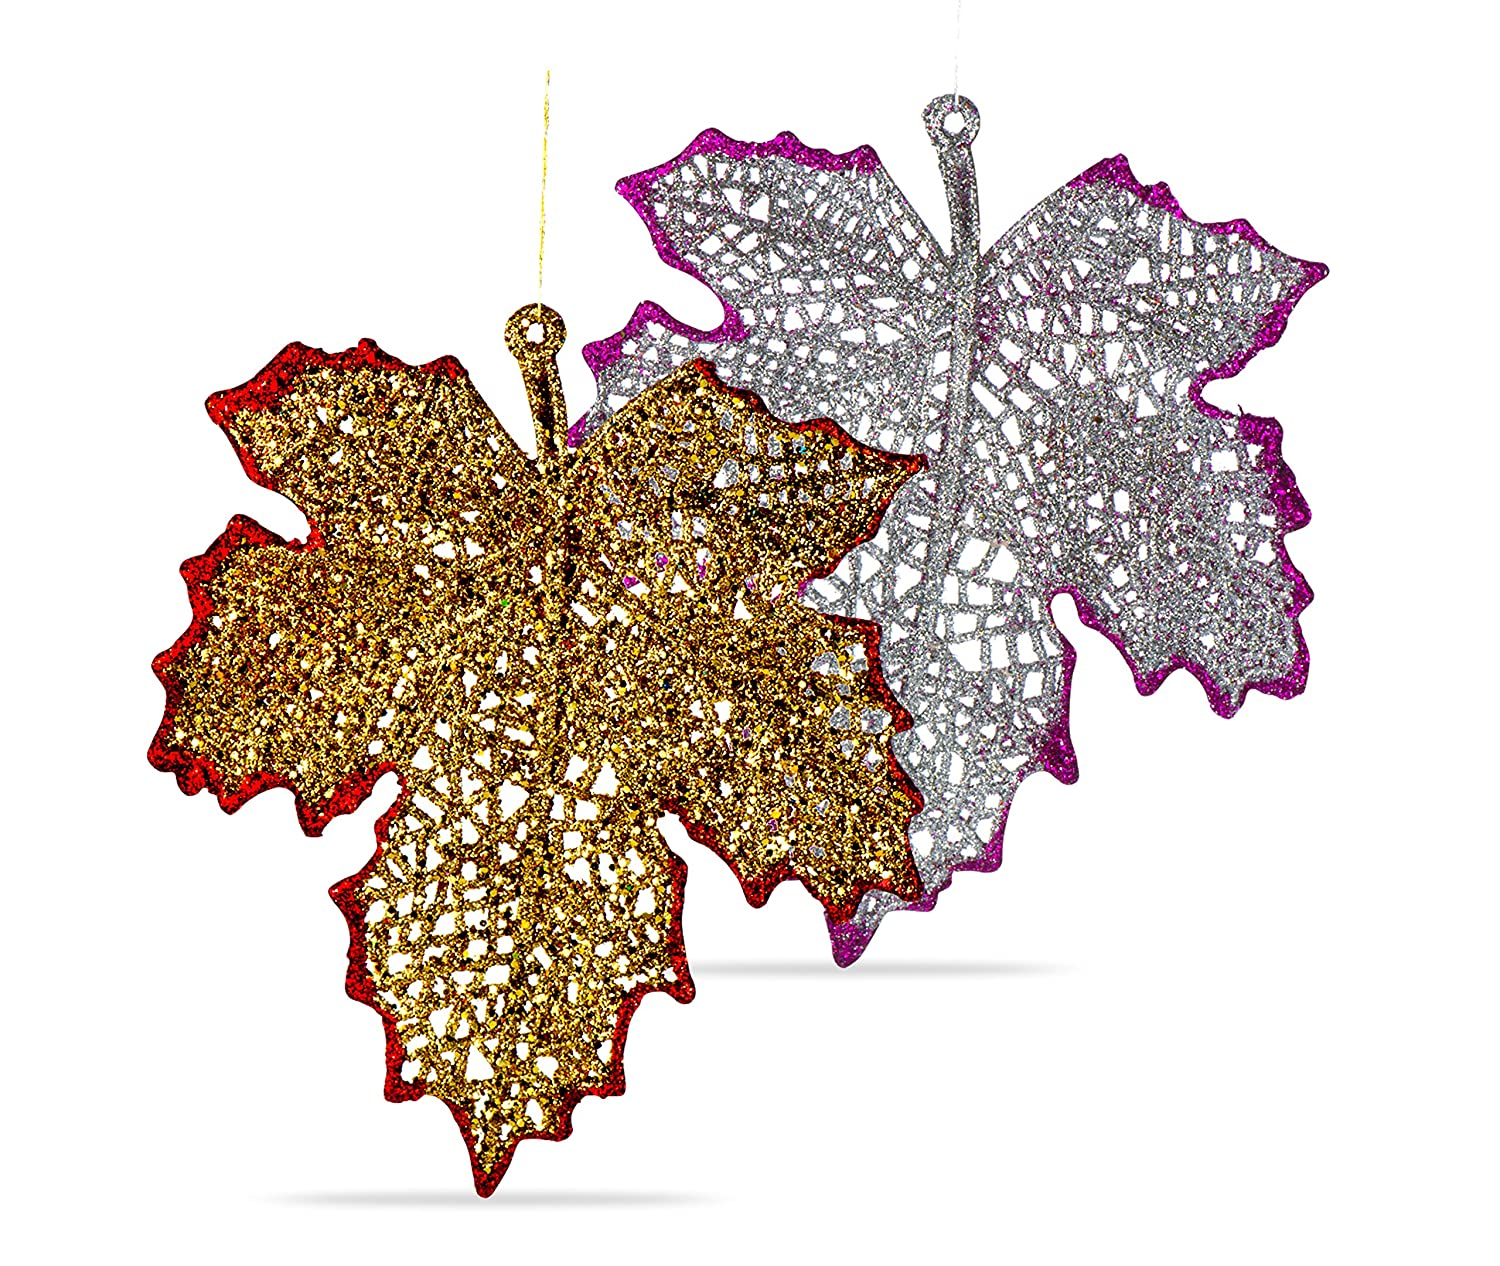 R N' D Toys Christmas Ornament Leaves, Shatterproof Hanging Ornaments for Christmas Tree, Indoor and Outdoor Christmas Holiday Home Decoration (Gold & Silver) R N' D Toys